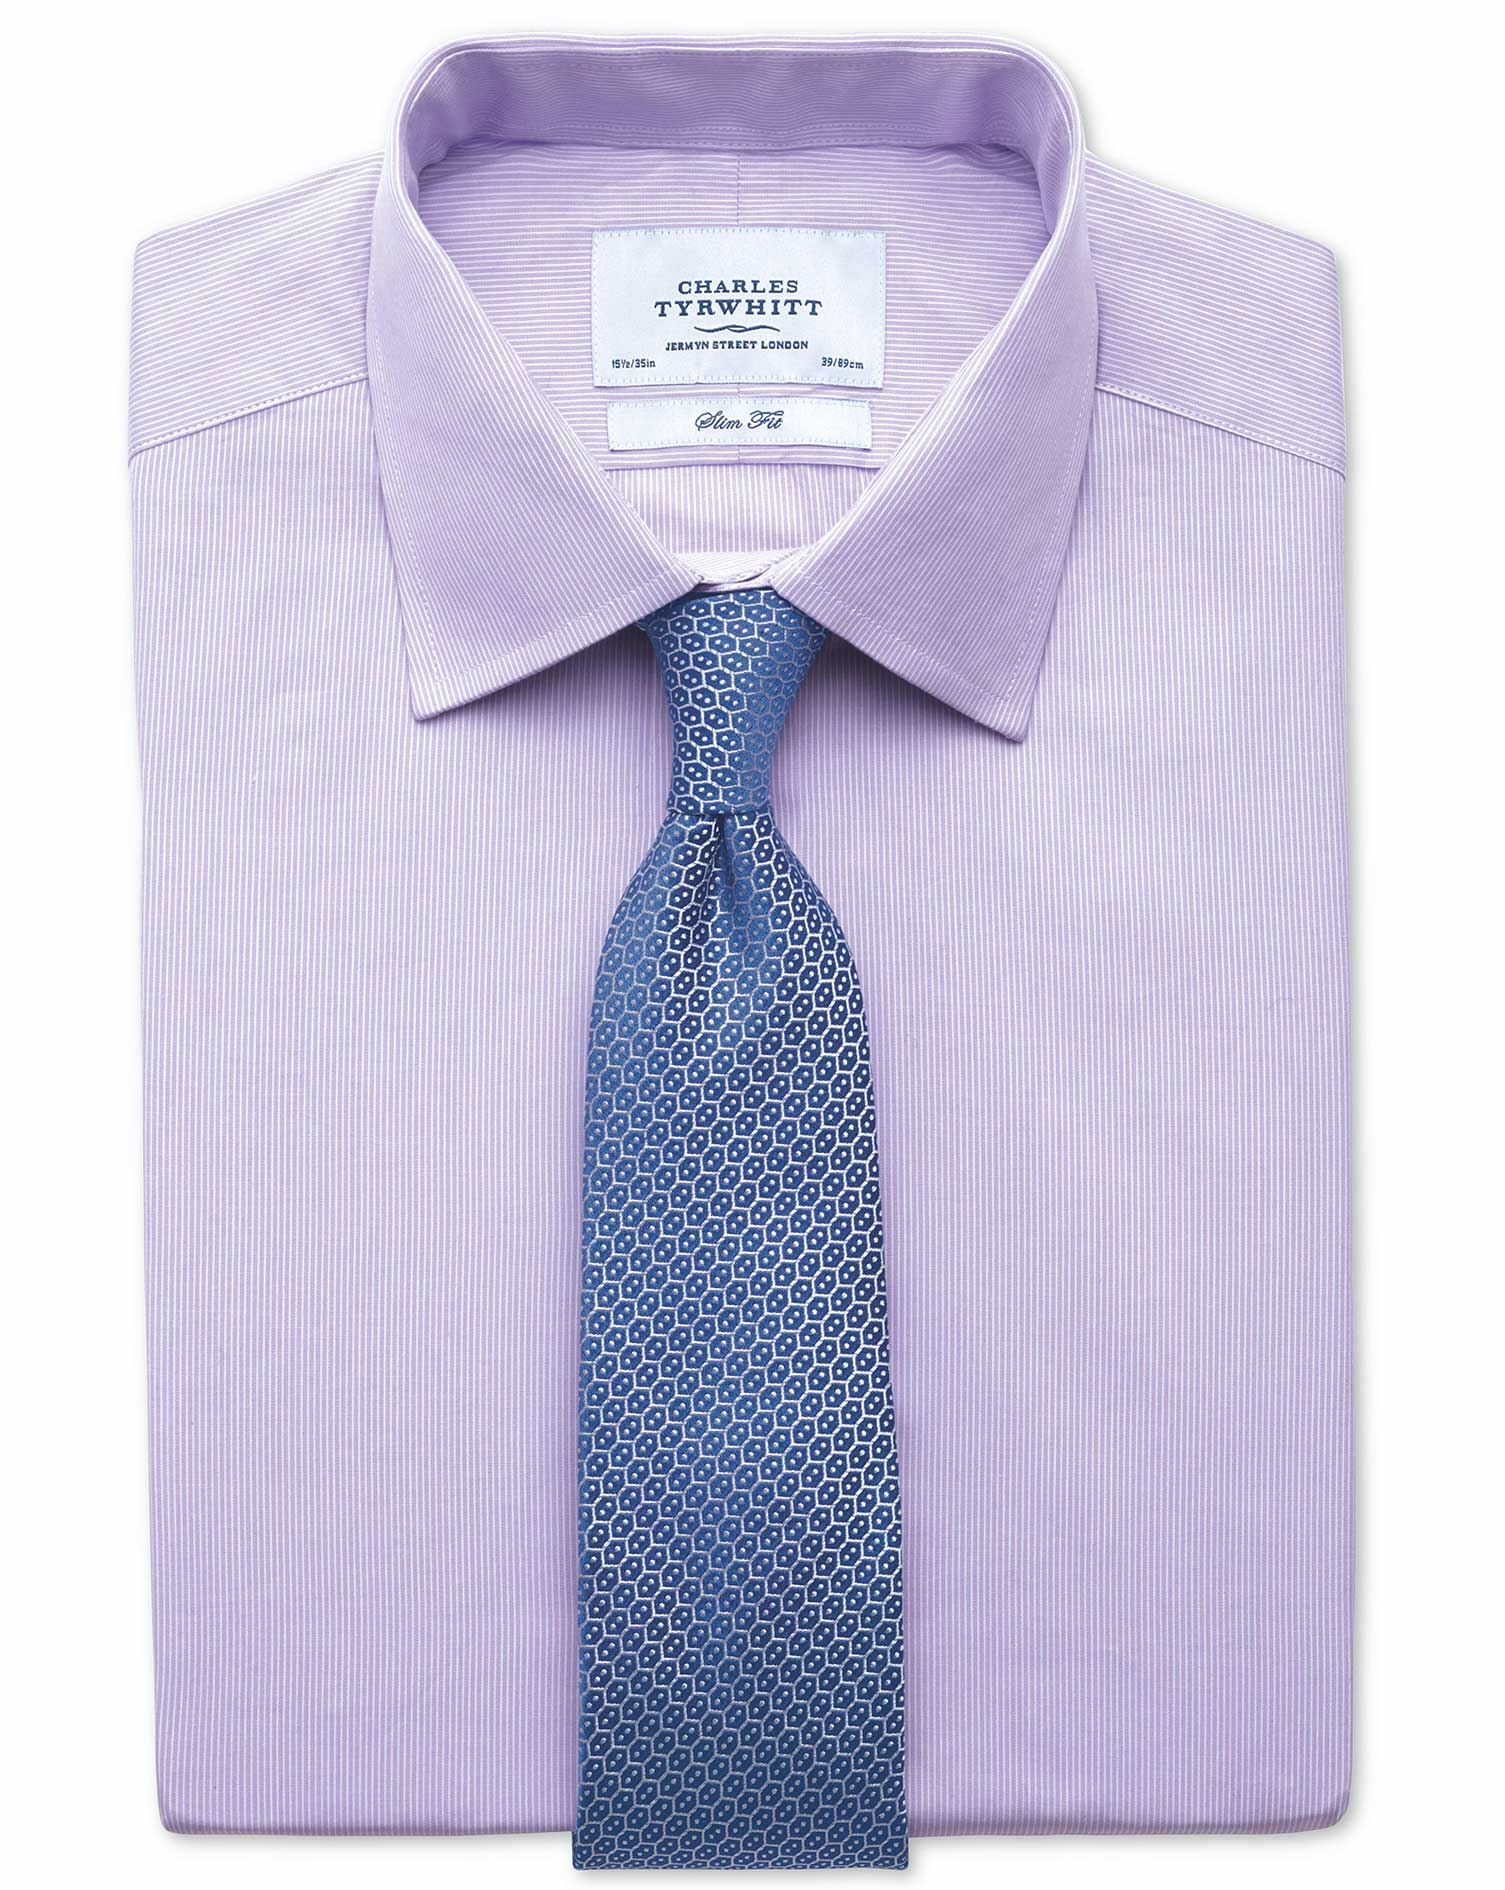 Slim Fit Fine Stripe Lilac Cotton Formal Shirt Double Cuff Size 18/35 by Charles Tyrwhitt